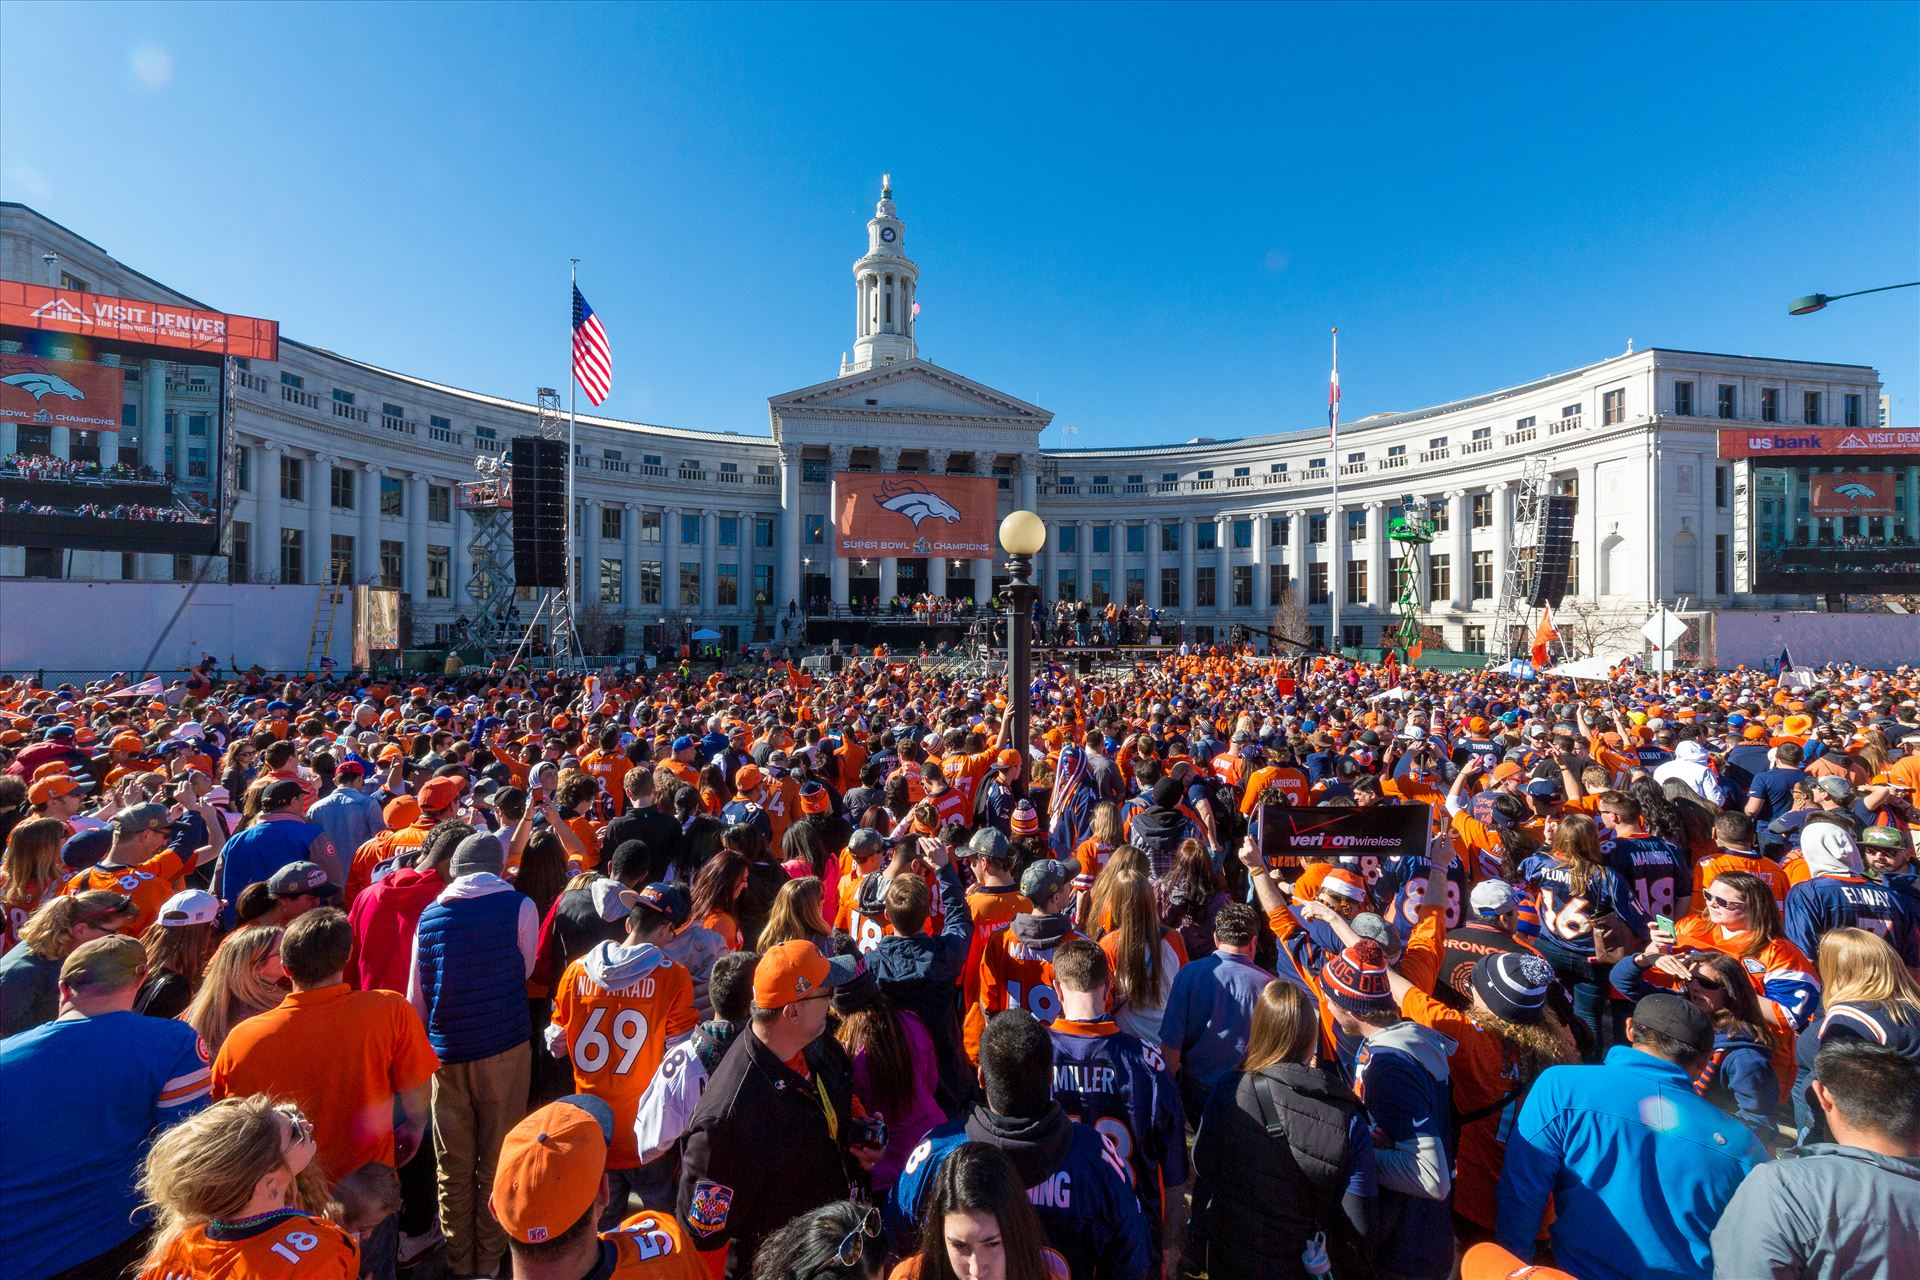 Broncos Fans at the Superbowl Victory Celebration - The best fans in the world descend on Civic Center Park in Denver Colorado for the Broncos Superbowl victory celebration. by D Scott Smith